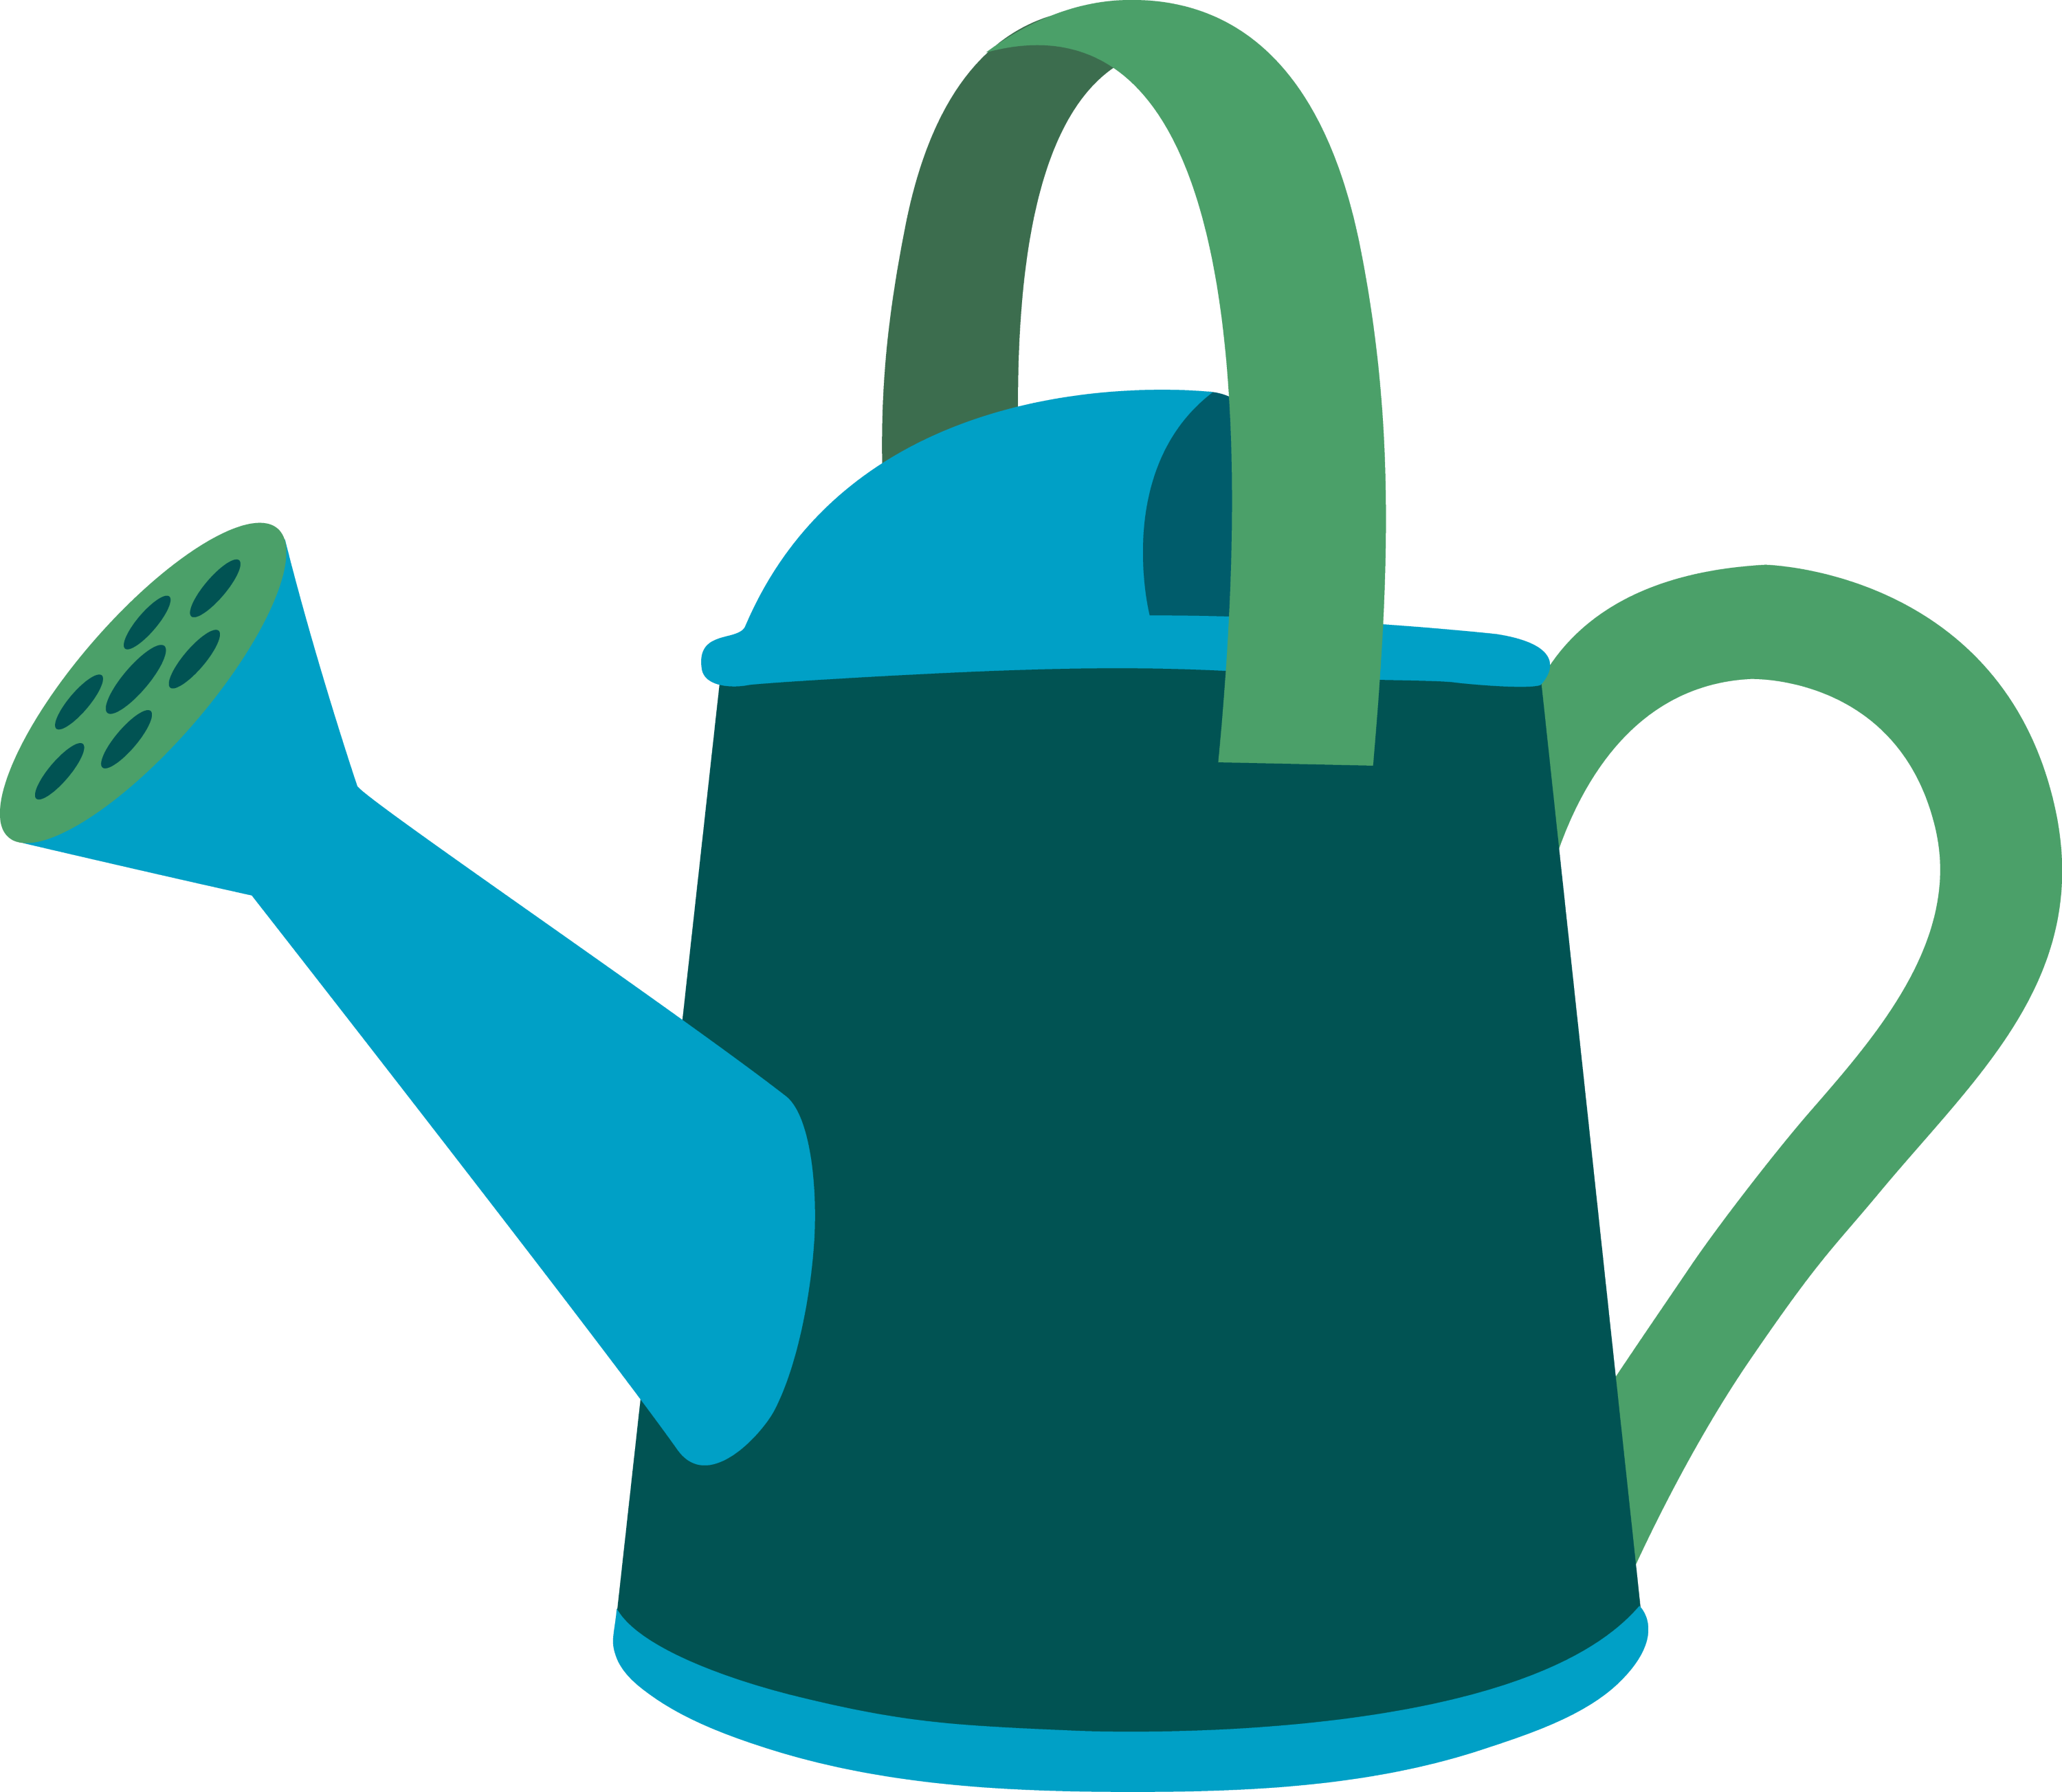 Garden Watering Can Design - Free Clip Art